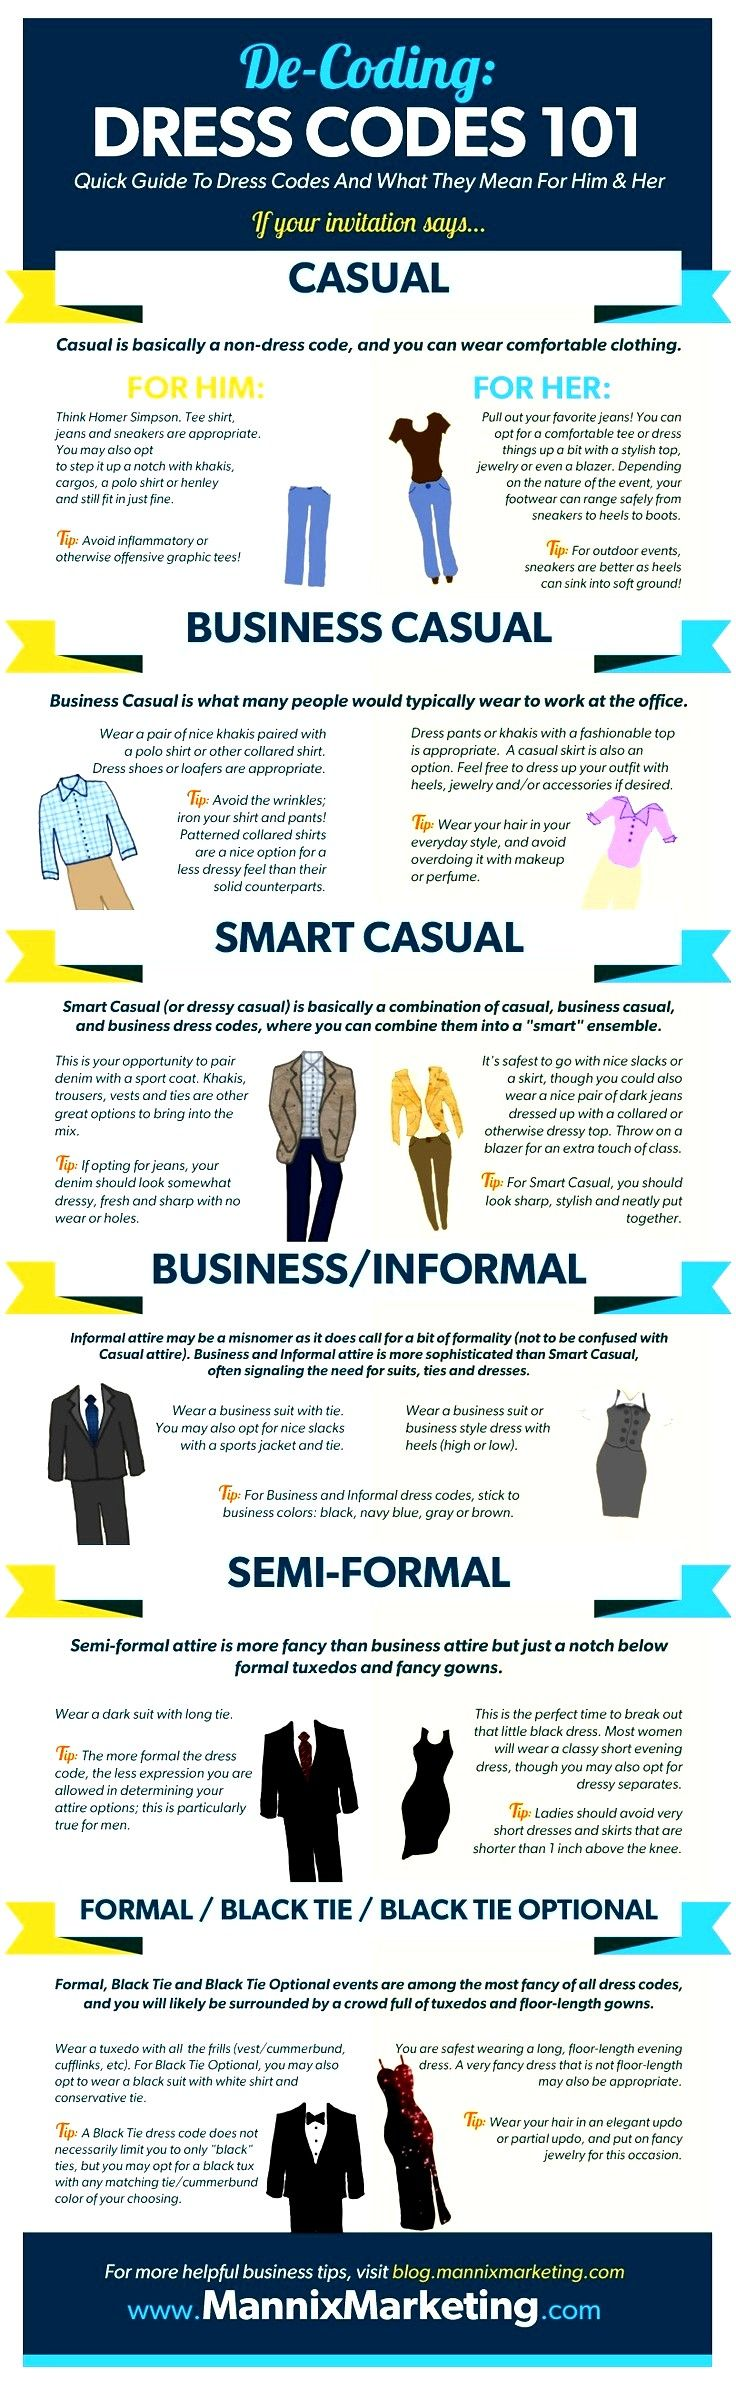 Business dress codes if you own your own company or enterprise you